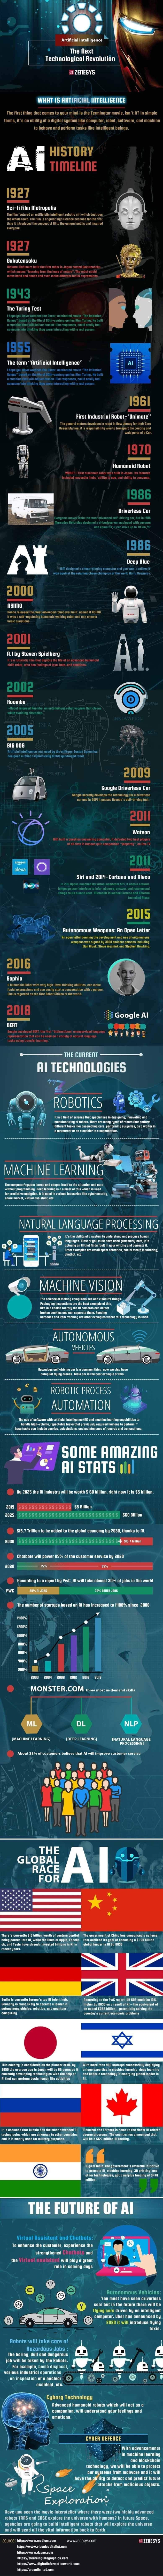 The next technological revolution #infographic